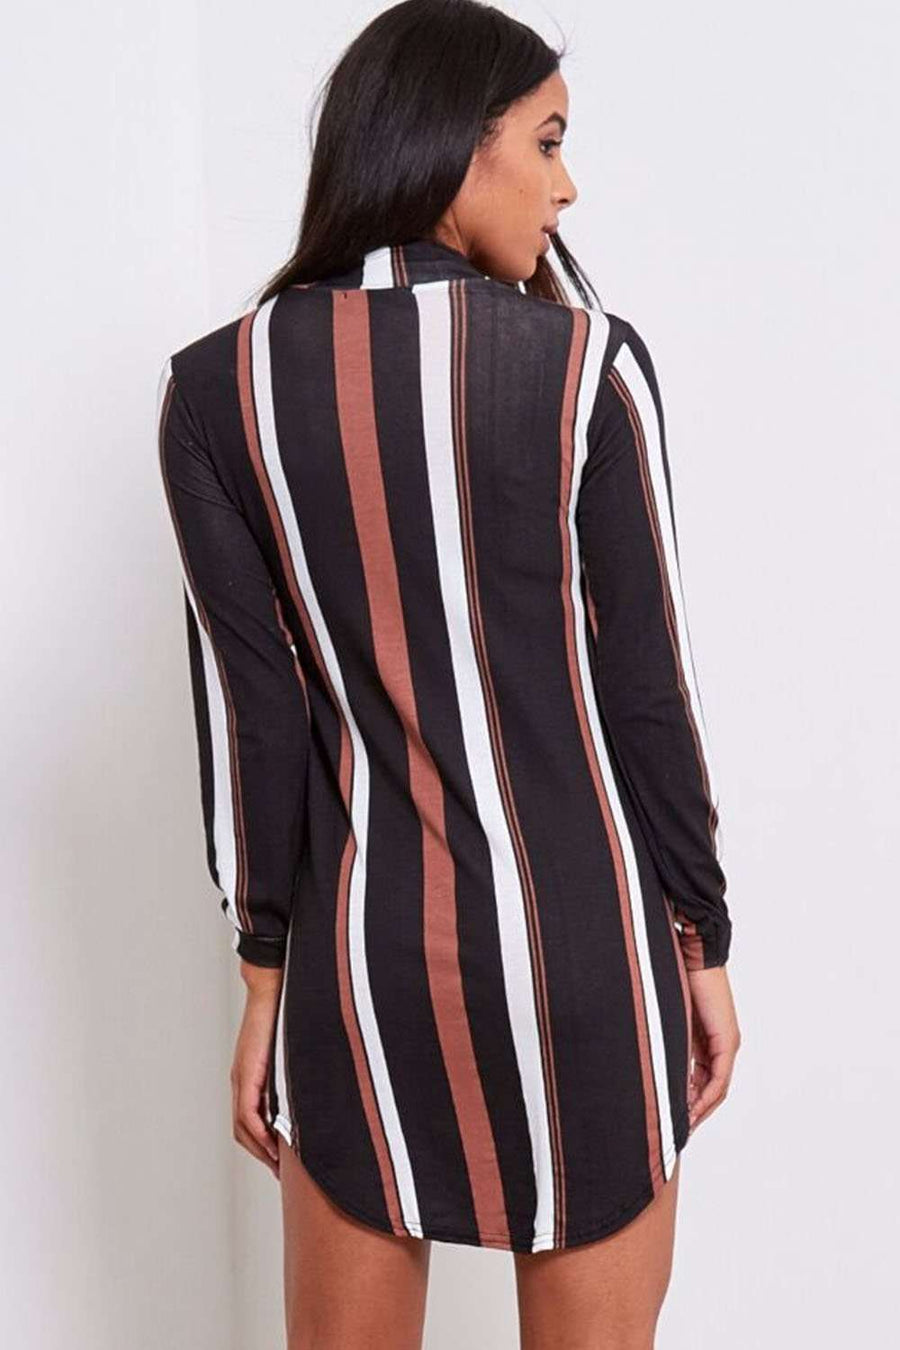 Iris Monochrome Striped Shirt Dress - bejealous-com